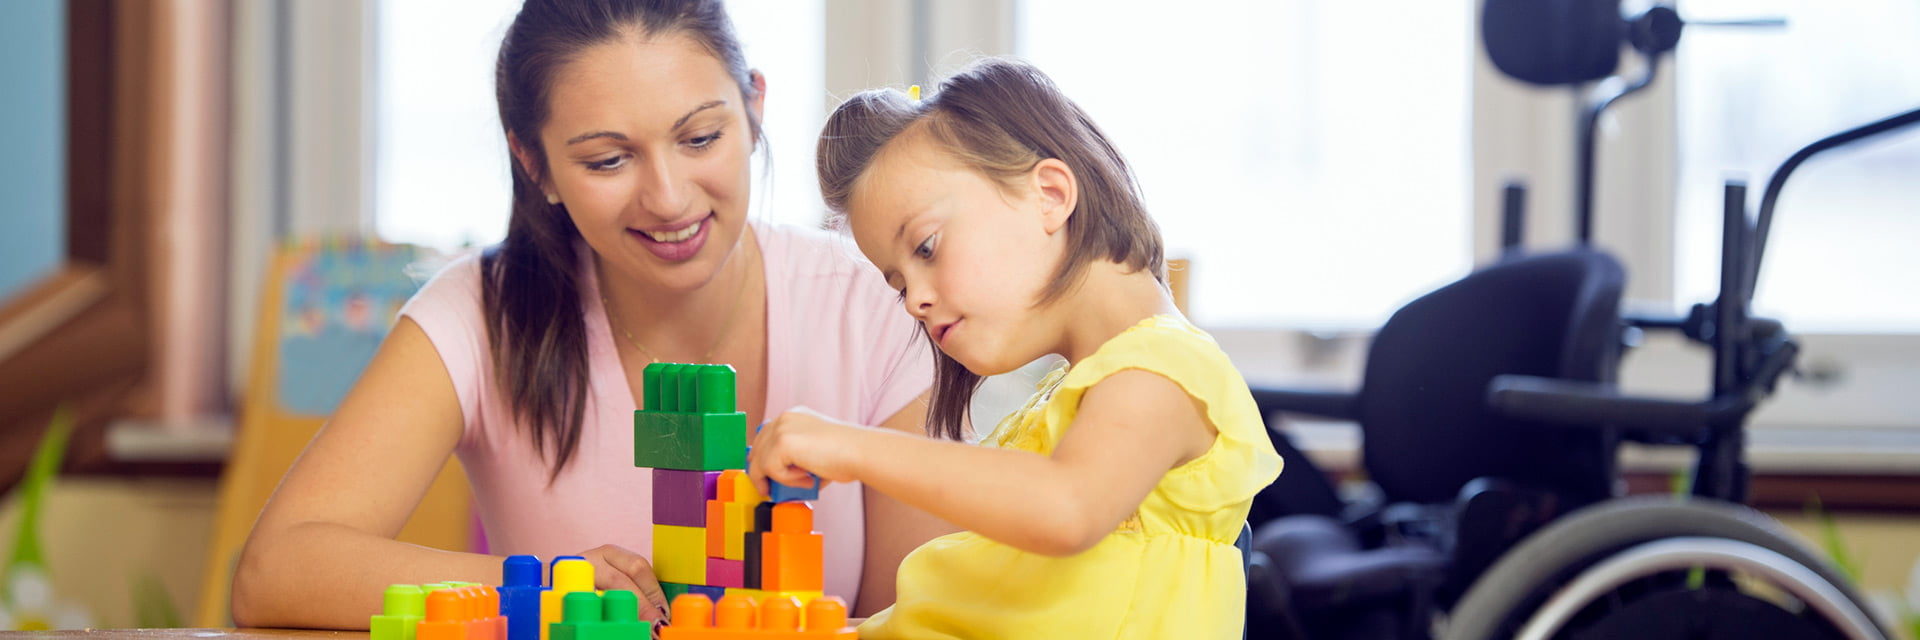 Support Worker and child with a disability playing with building blocks together